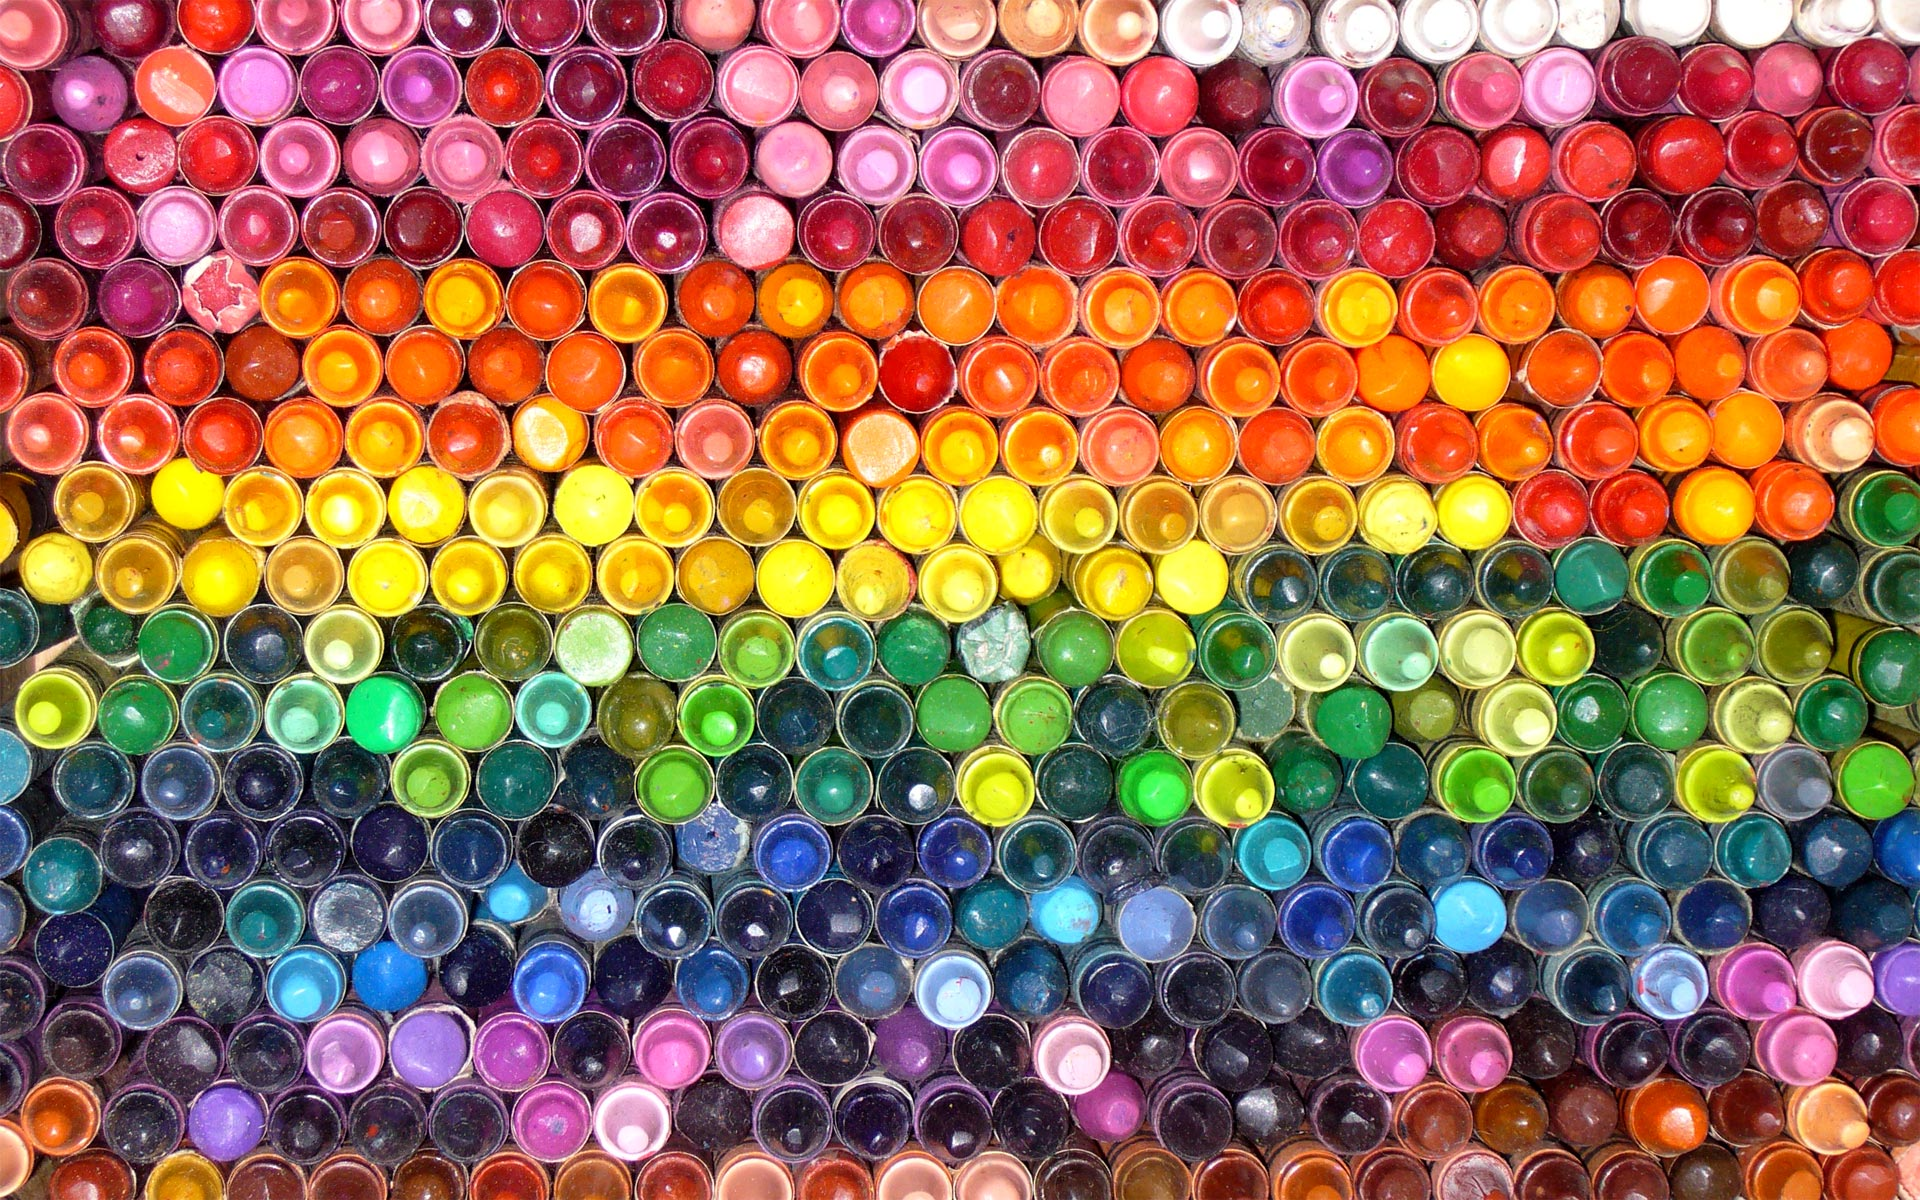 Wallpapers Of The Day: Crayon | 1920x1200 Crayon Pics